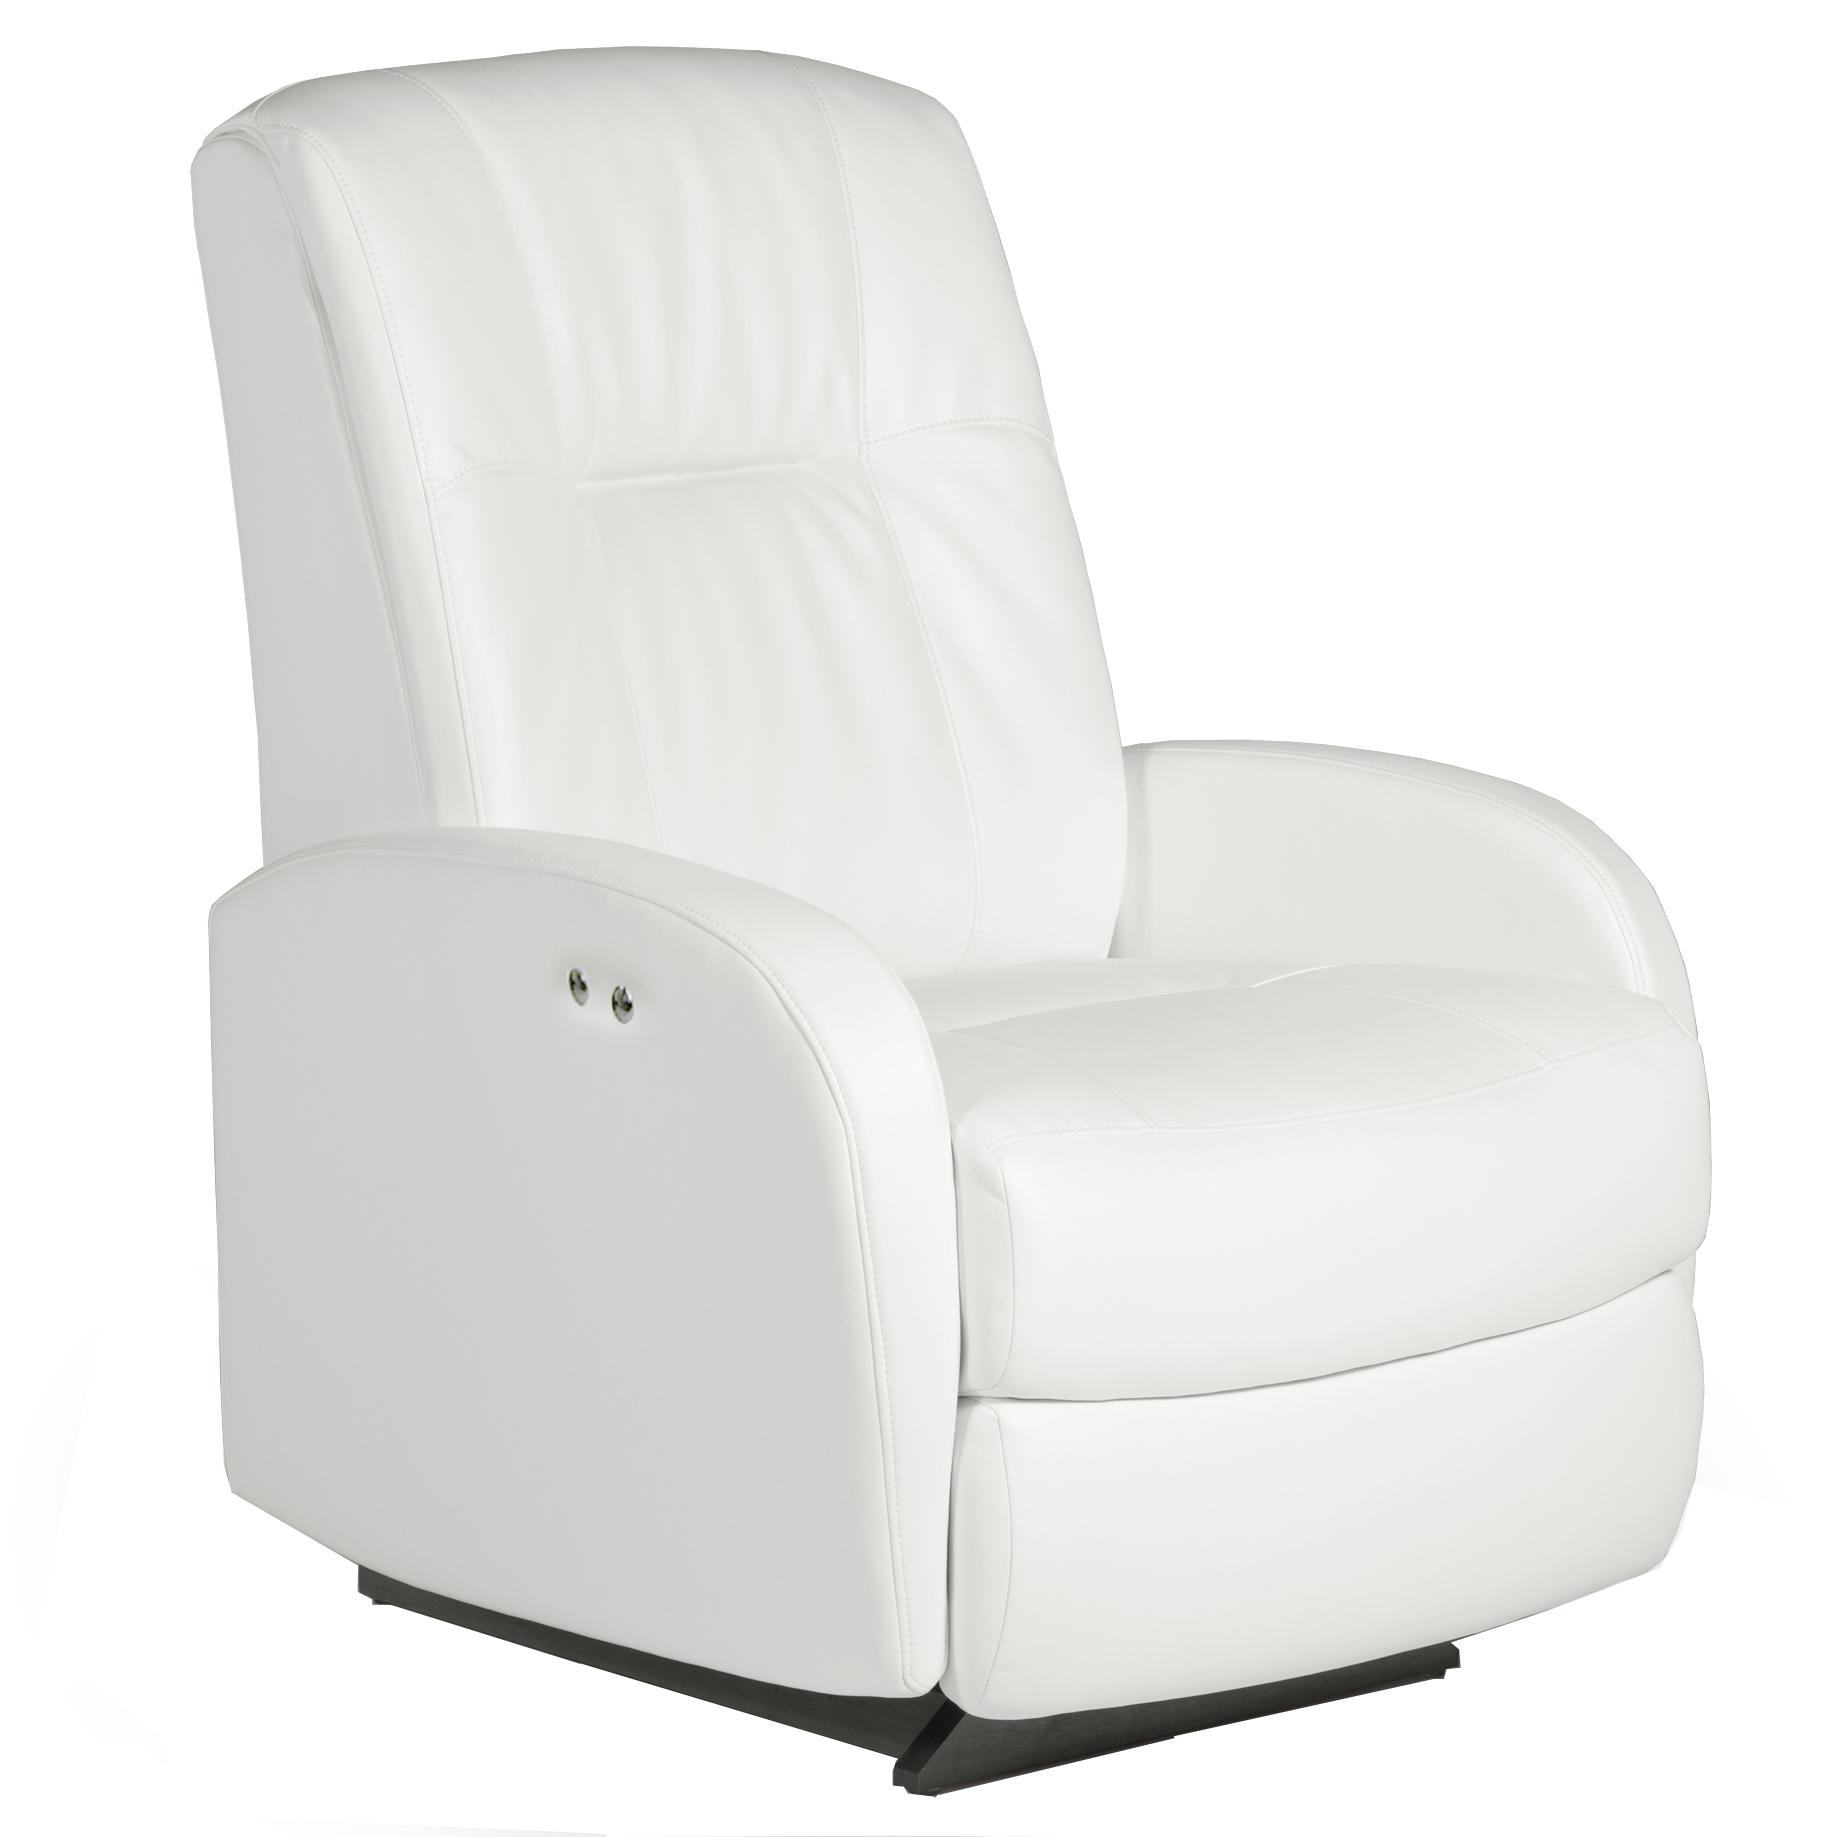 Best Home Furnishings Recliners - Petite Ruddick Swivel Glider Recliner - Item Number 2A45BL  sc 1 st  Wayside Furniture & Best Home Furnishings Recliners - Petite Ruddick Swivel Glider ... islam-shia.org